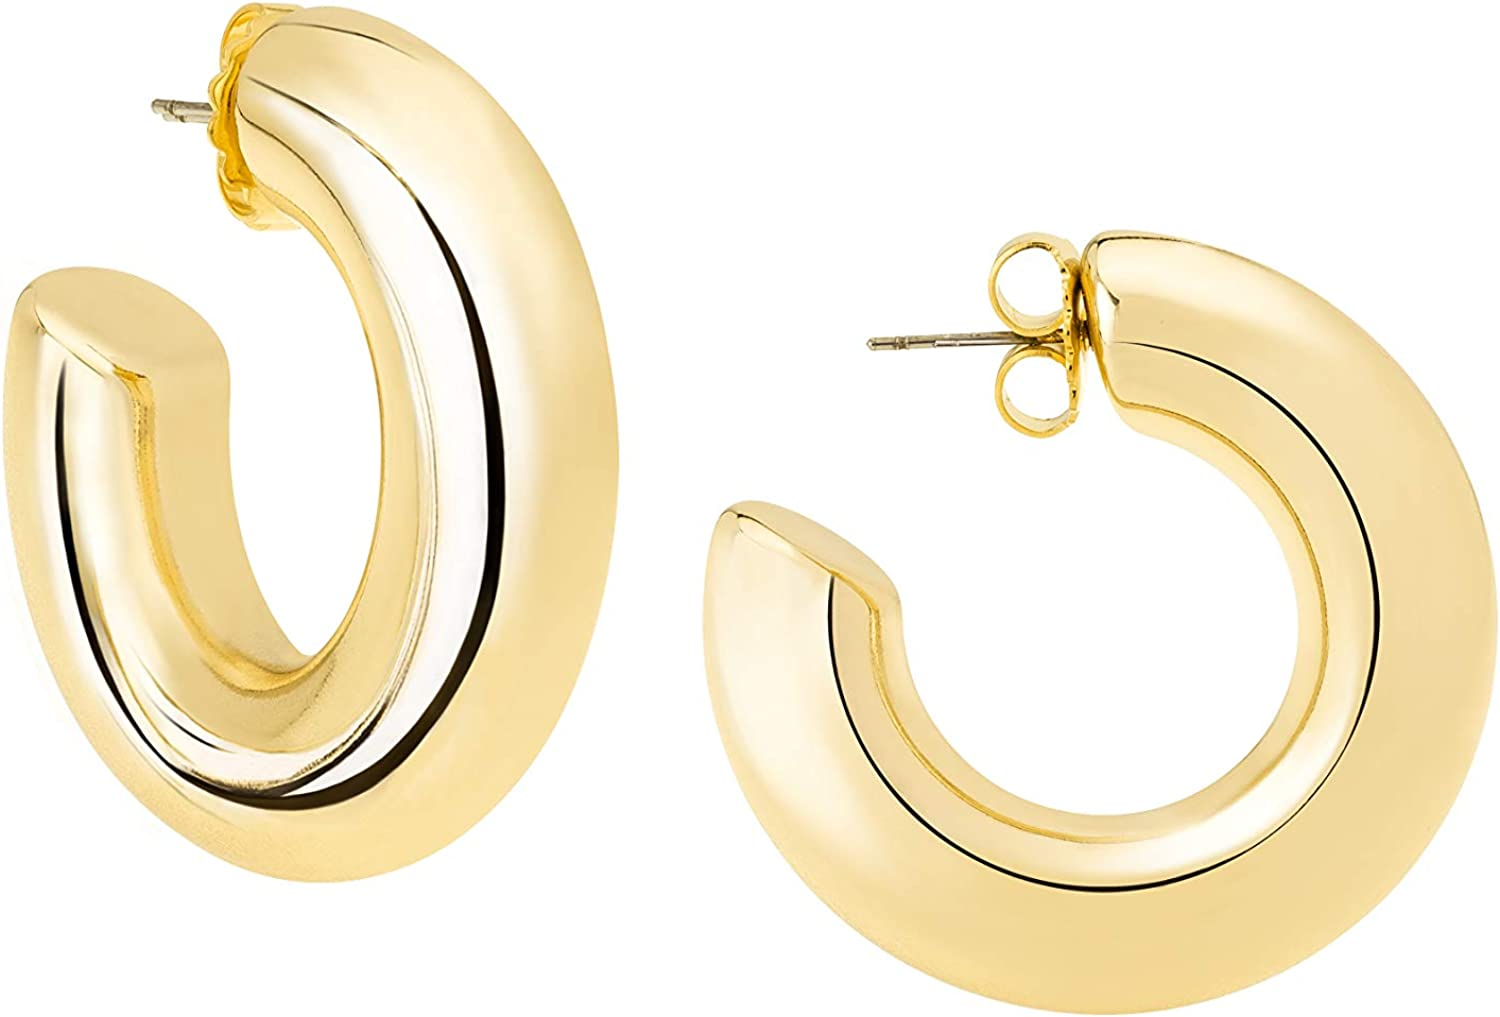 JANIS BY JANIS SAVITT High Polished Medium Hoop Earrings